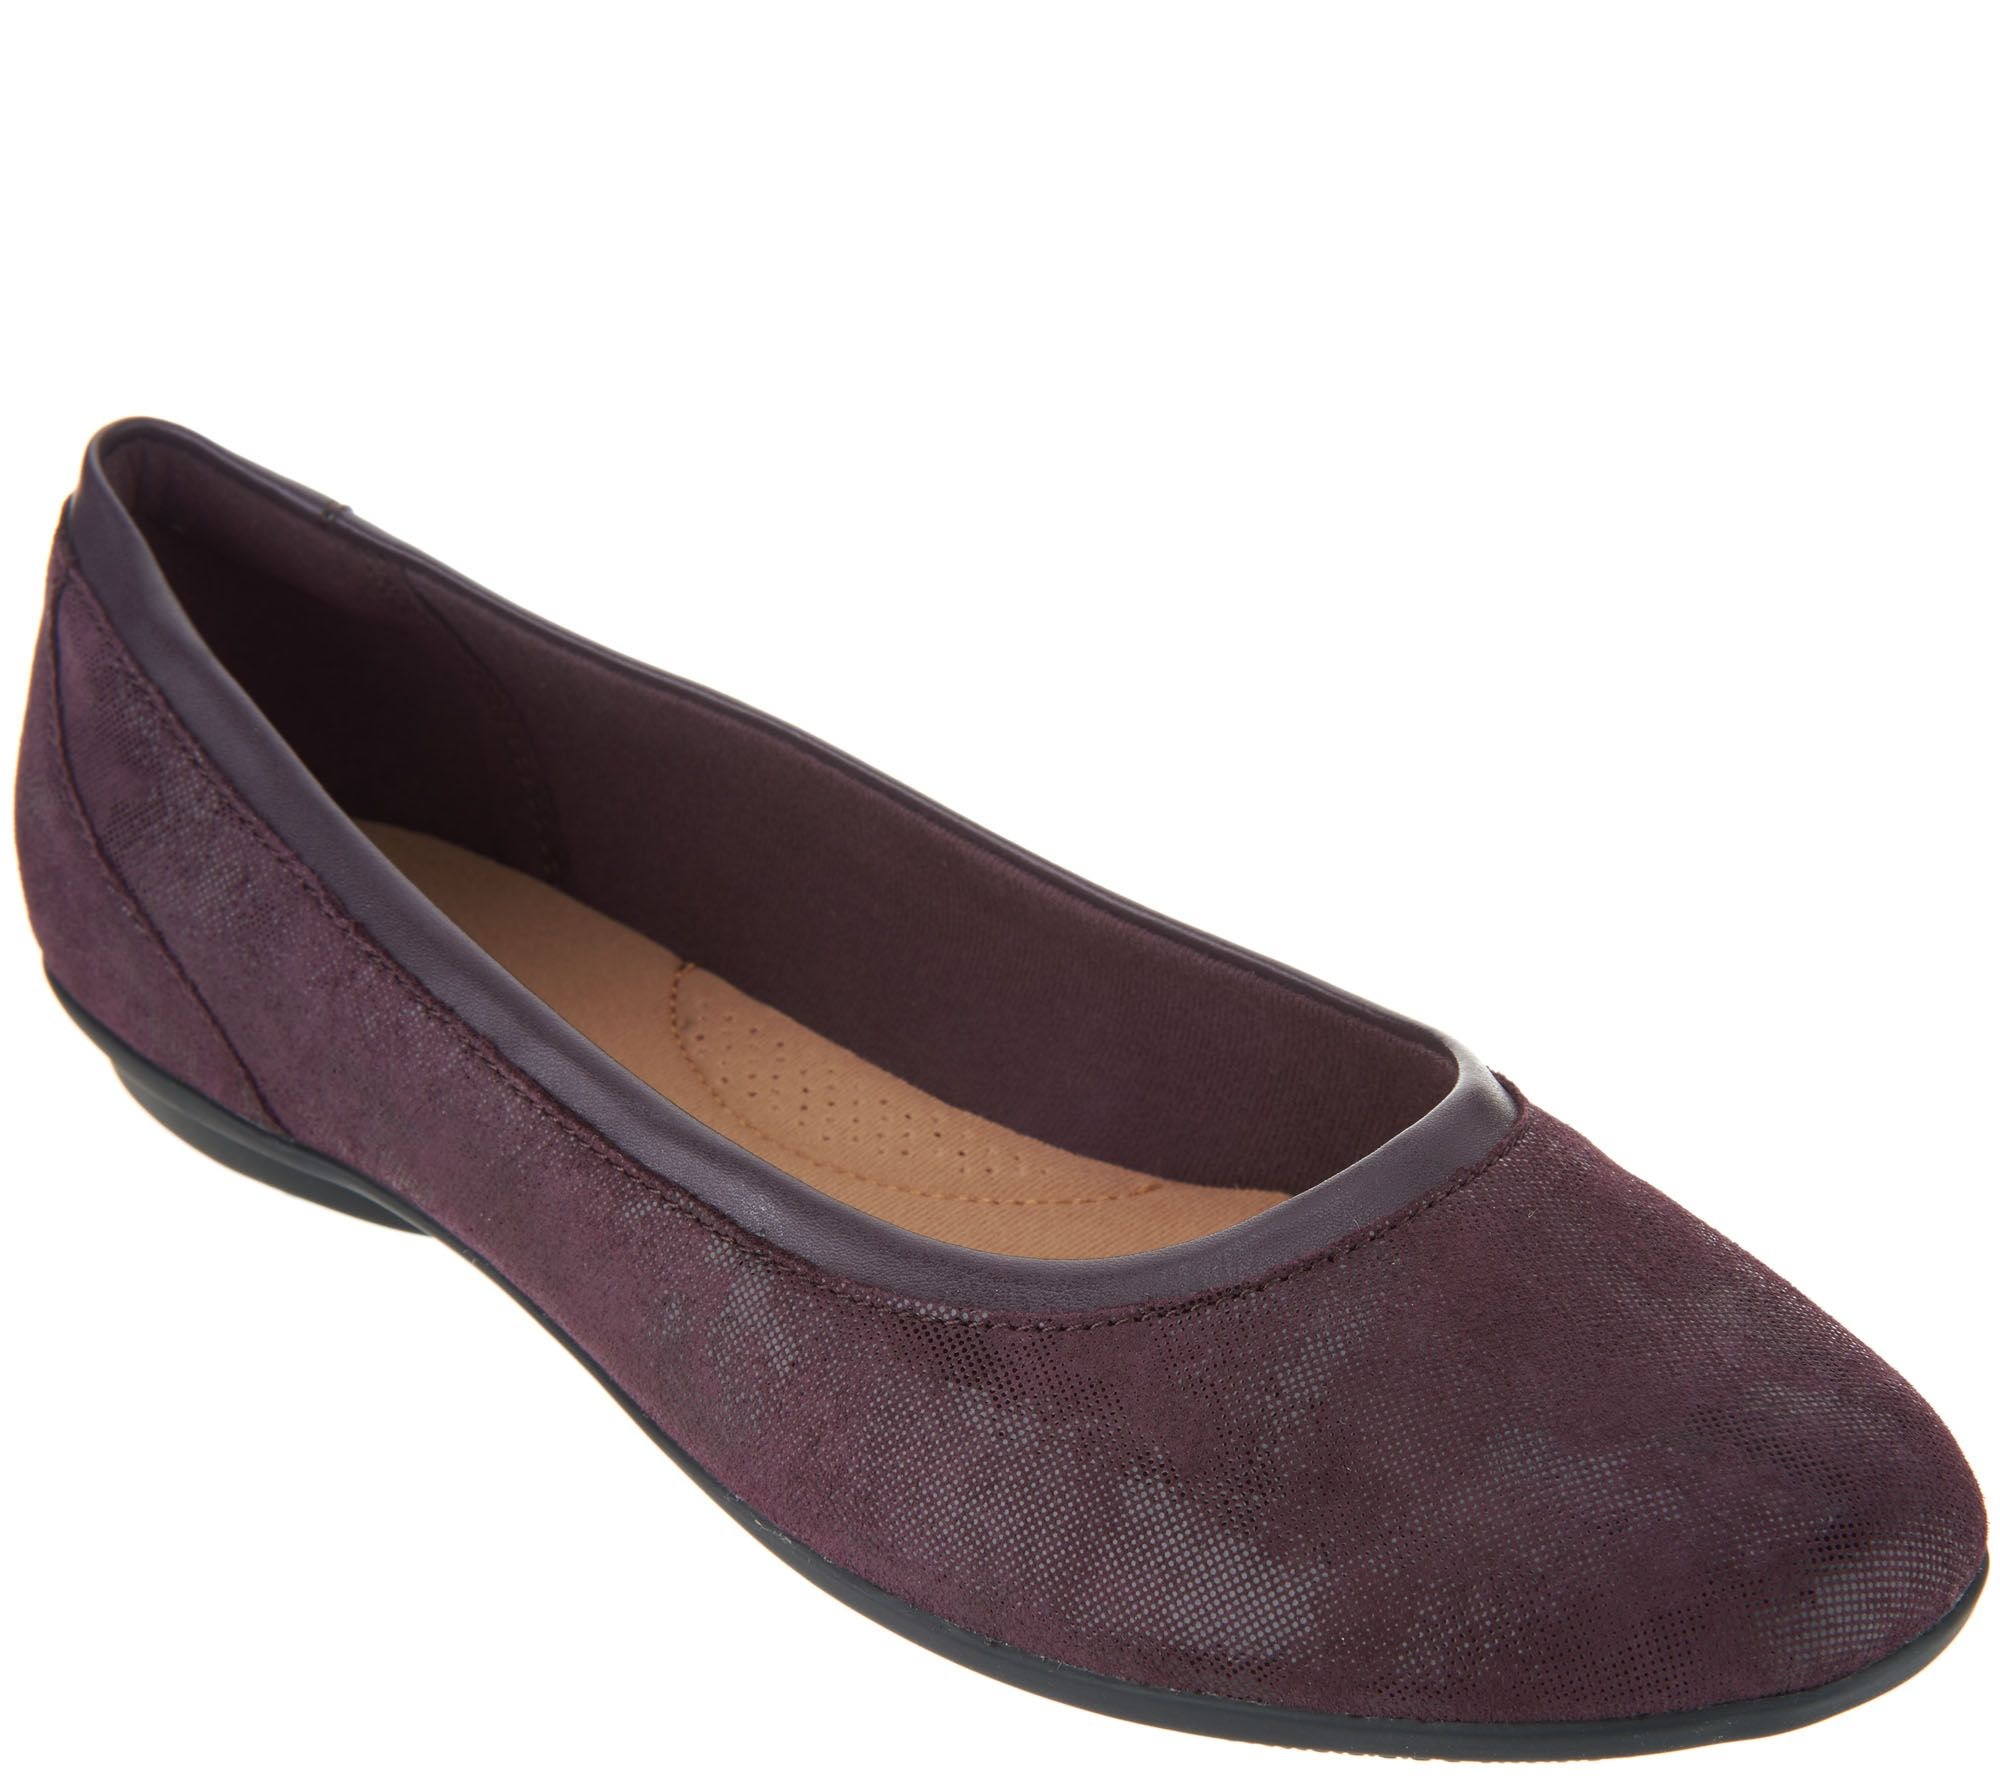 Clarks Womens Shoes At Dillards